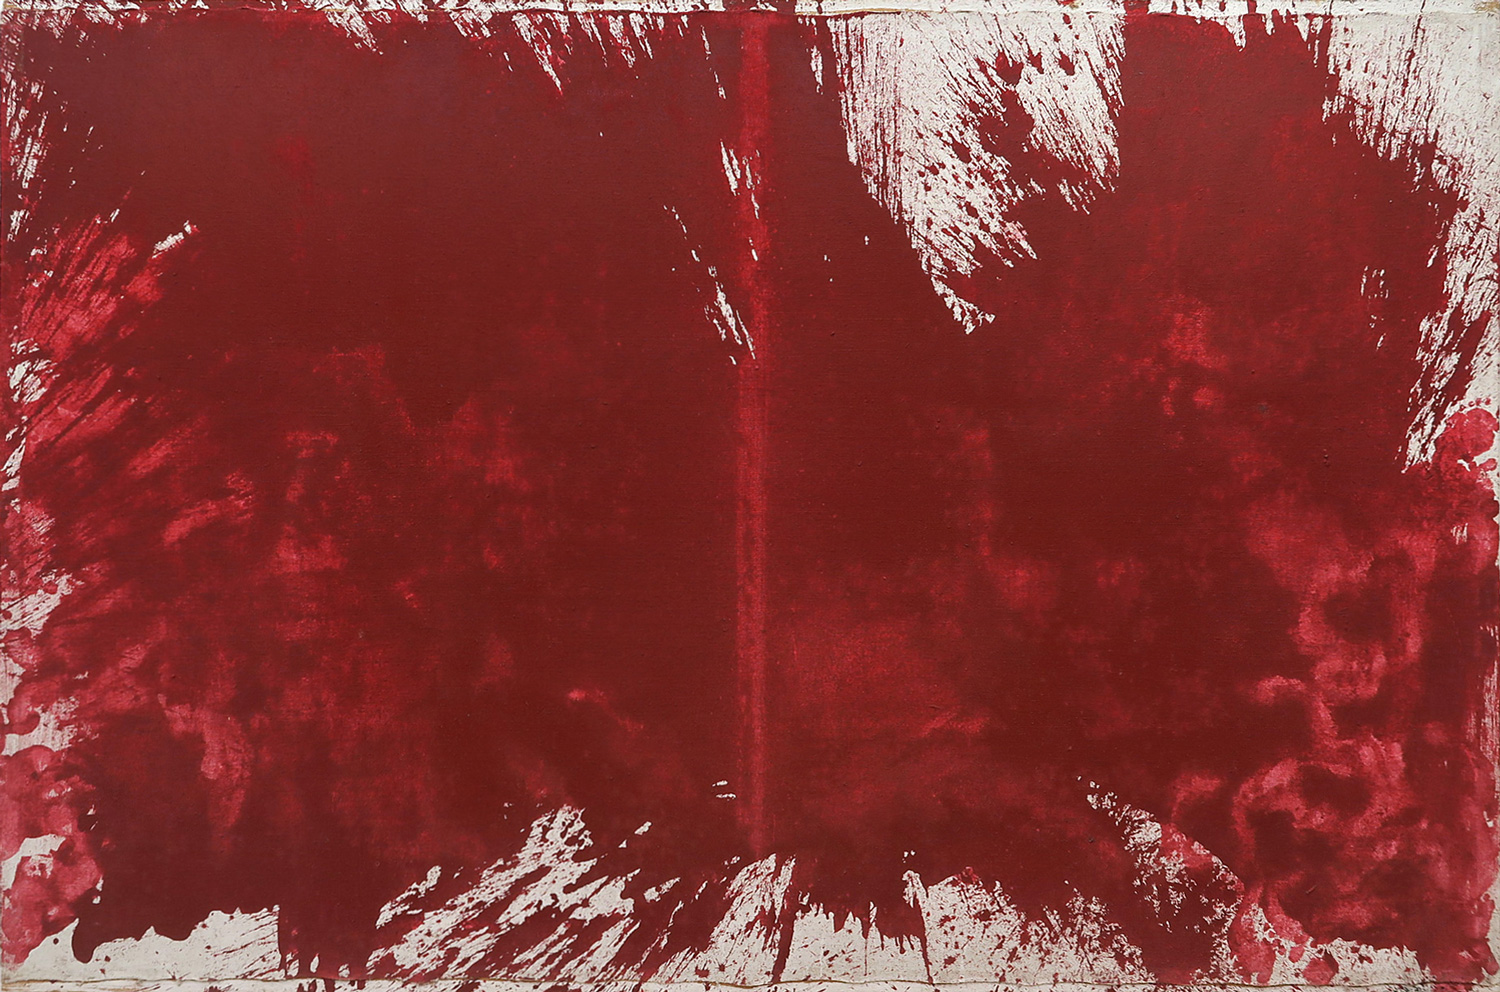 1983 Oil on Canvas 78 3/4 x 118 1/4 in 200 x 300 cm - Marc Straus Gallery